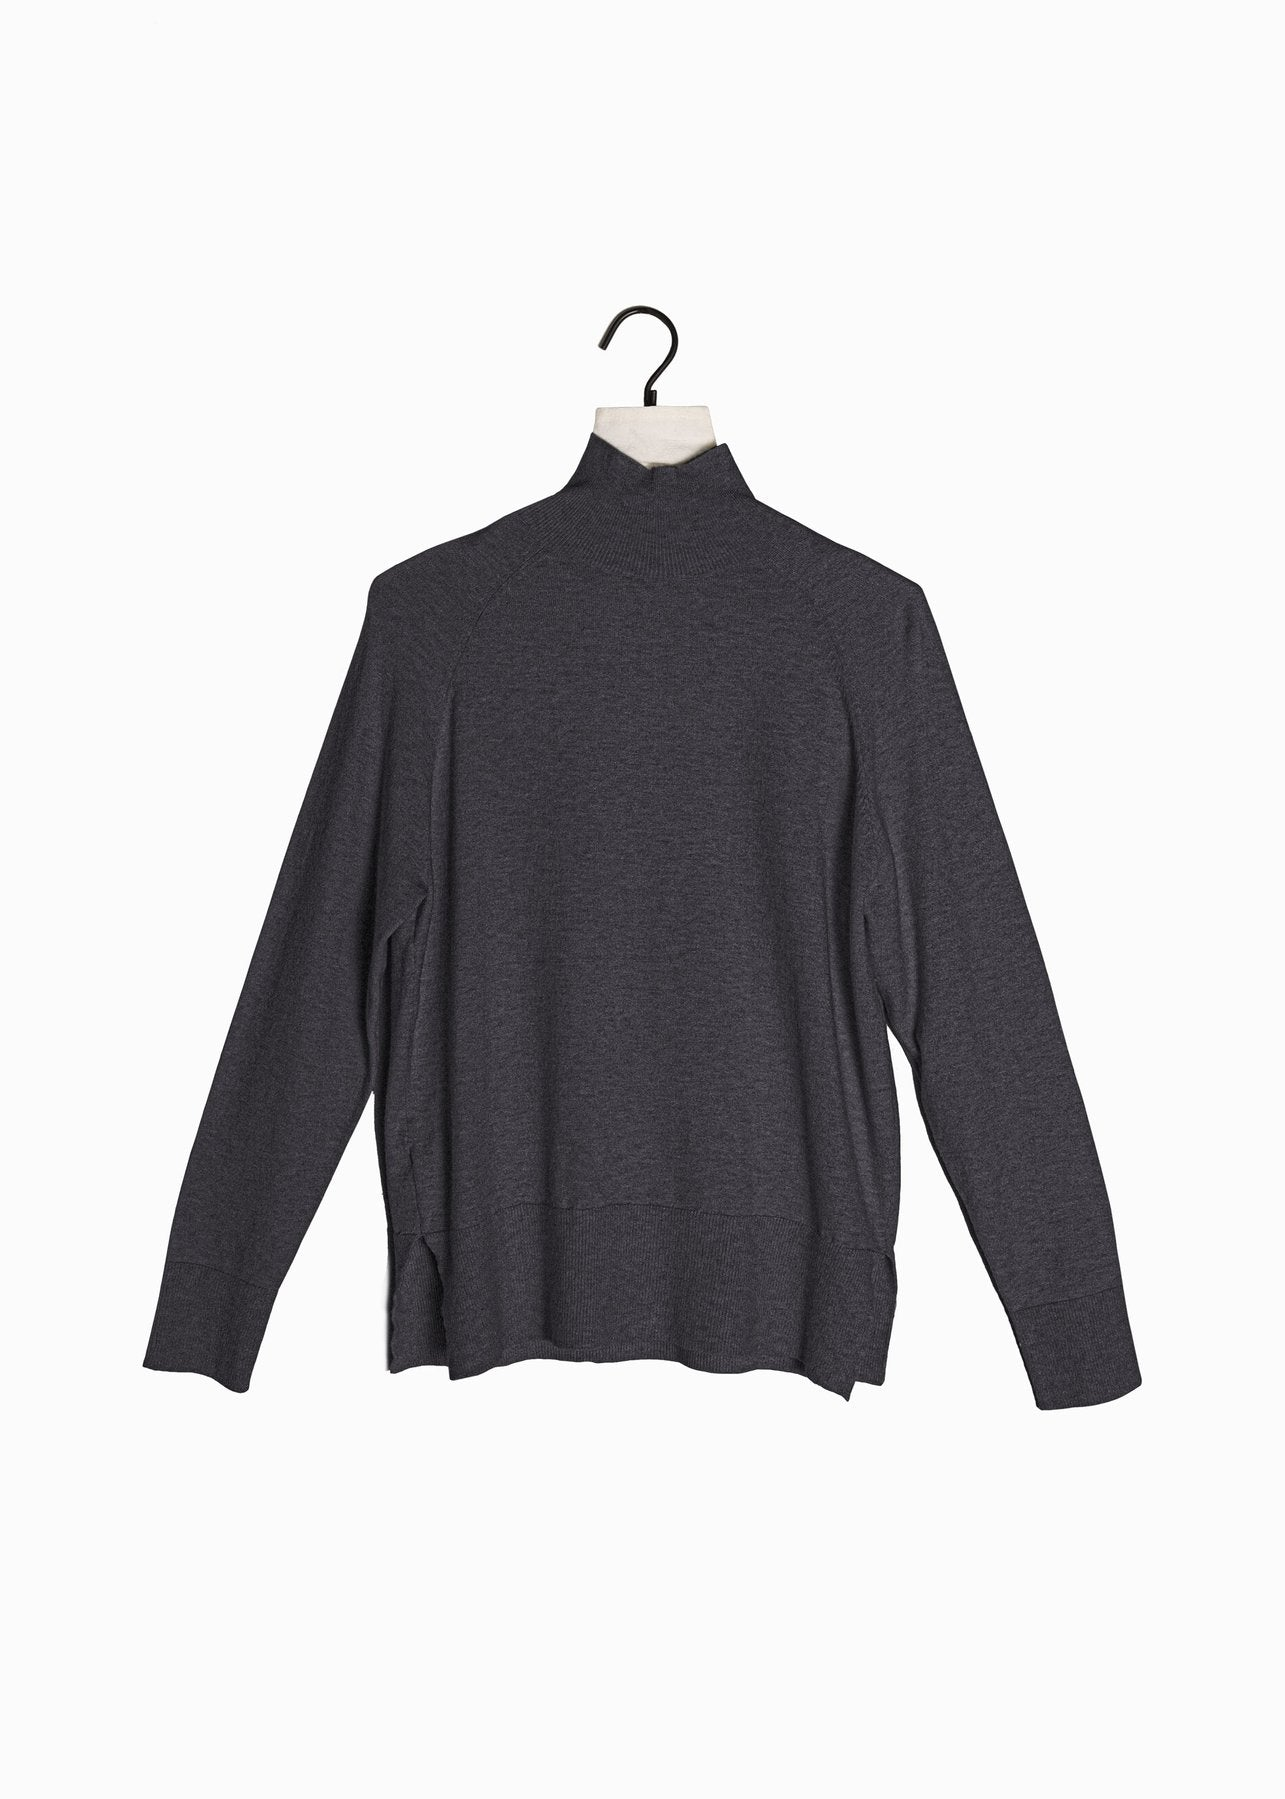 Fine Gauge Mockneck Sweater in Charcoal